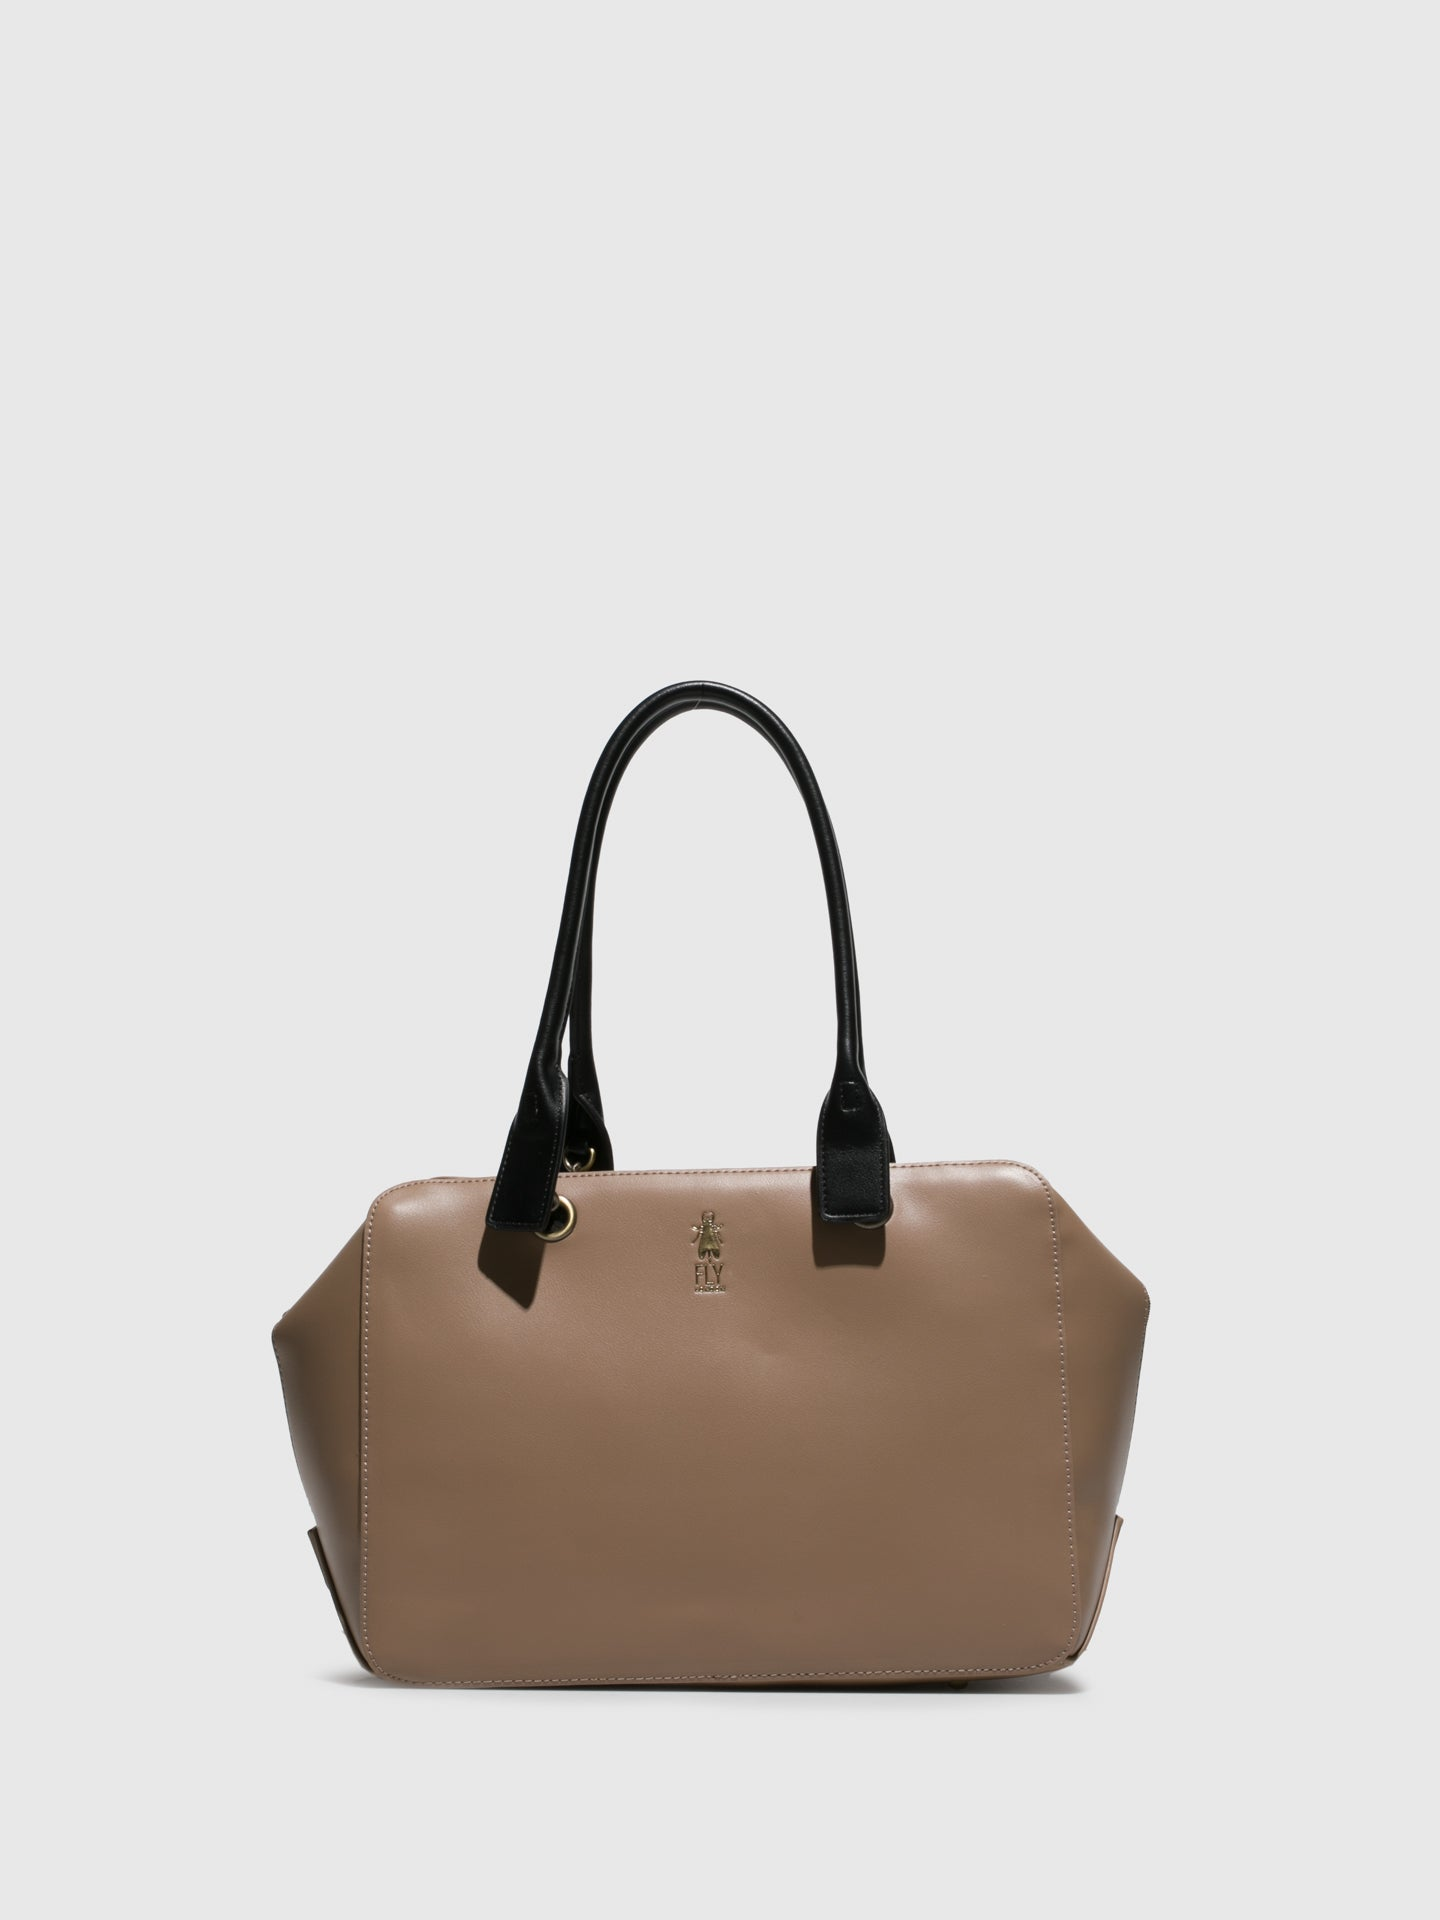 Fly London Handbag Bags AVES698FLY AUSTIN BEIGE